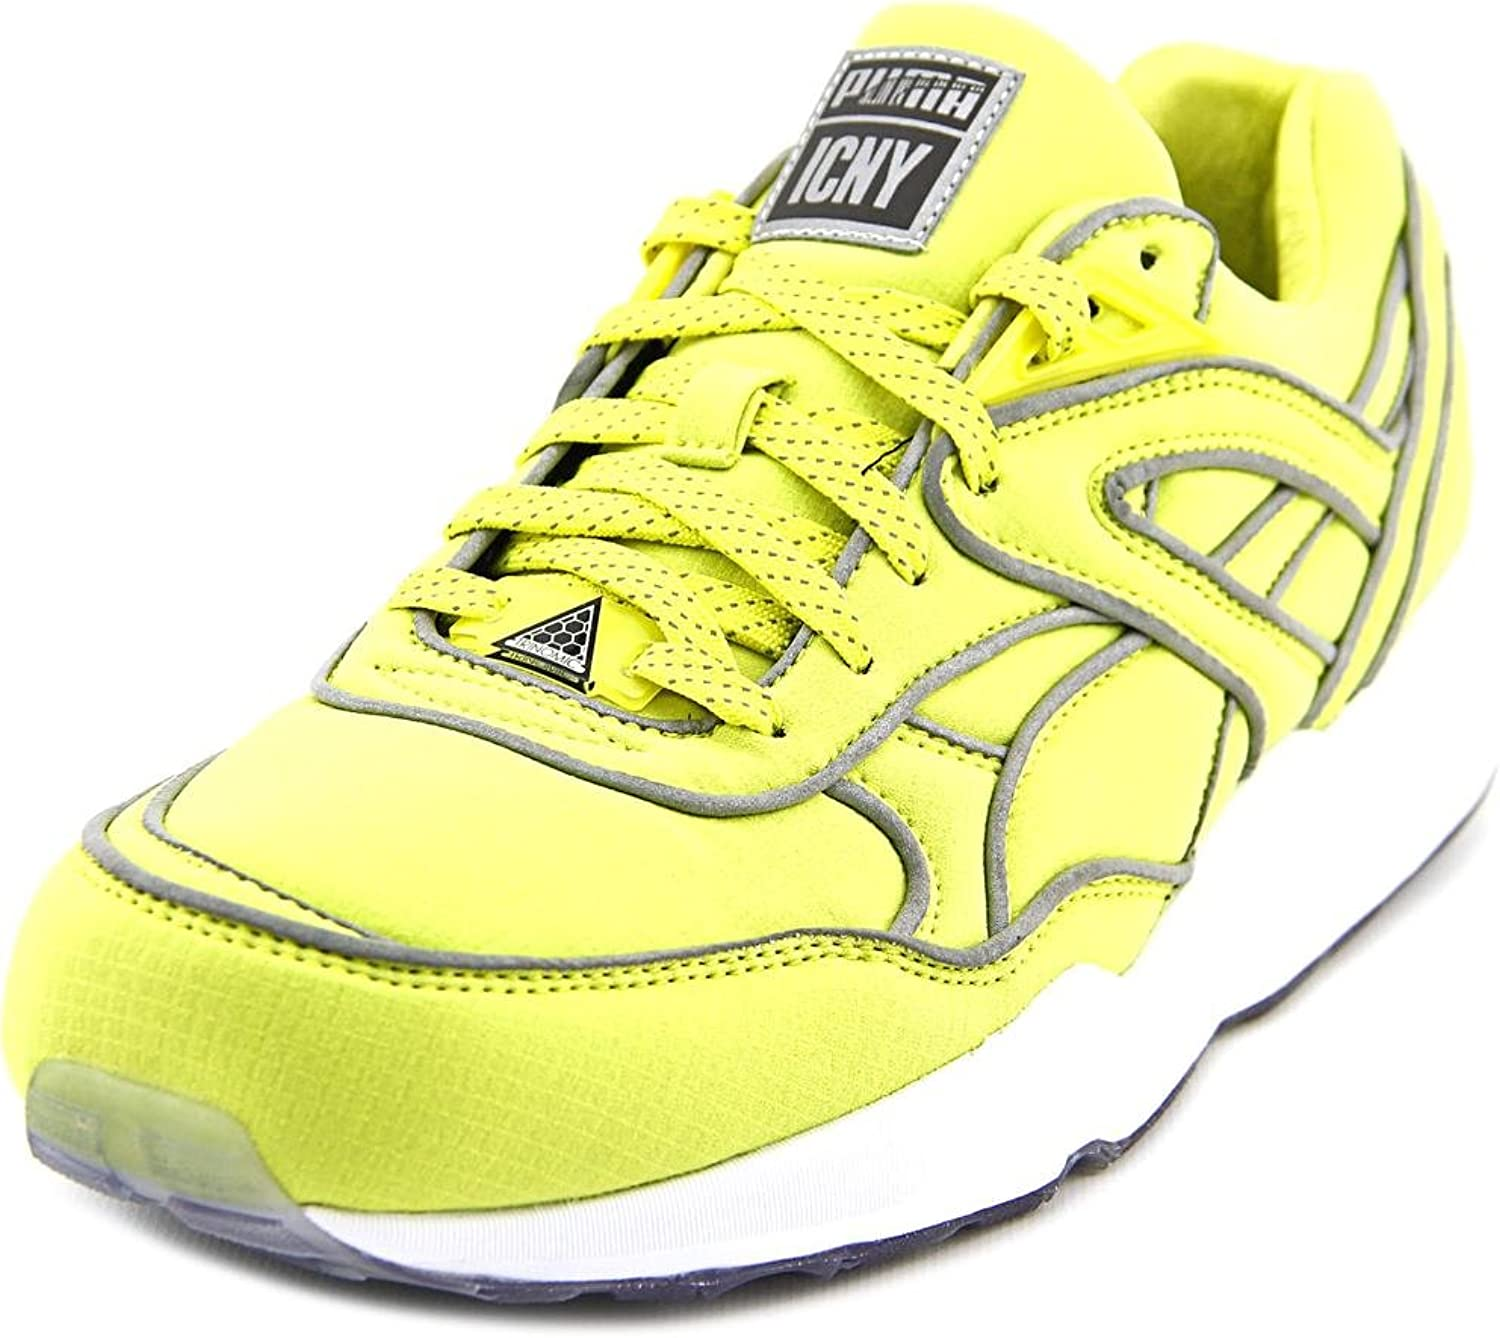 Puma Trinomic R698 x ICNY Men US 9 Yellow Running shoes